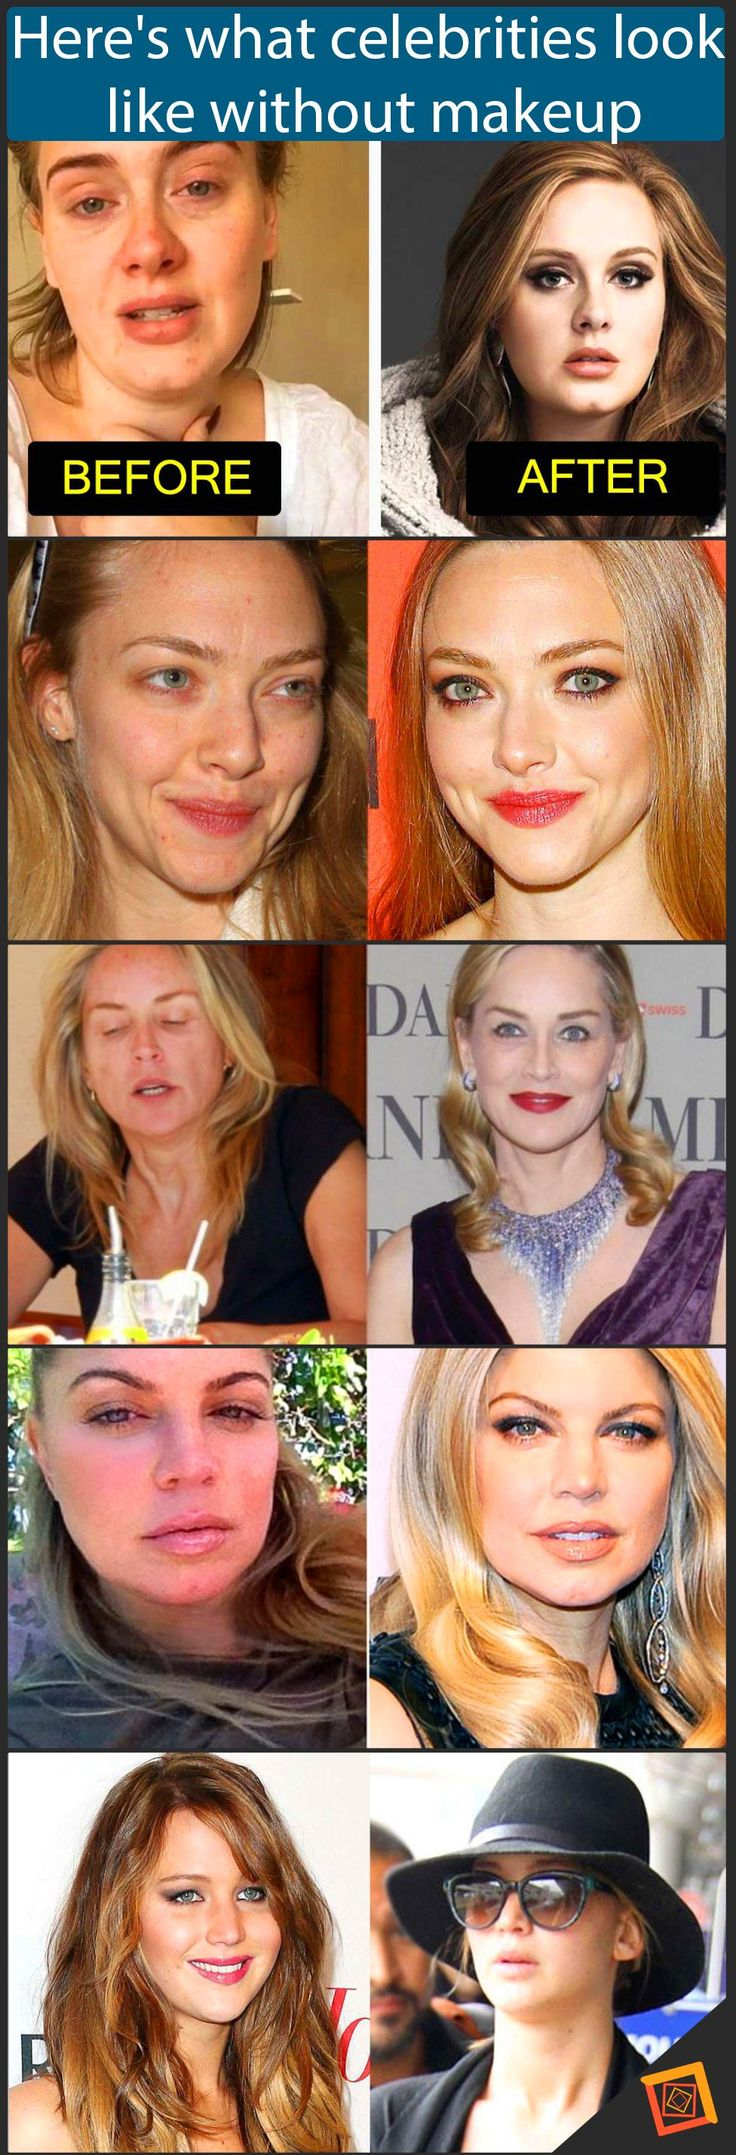 Top 20 Shocking Photos Of Hollywood Celebrities Without Makeup